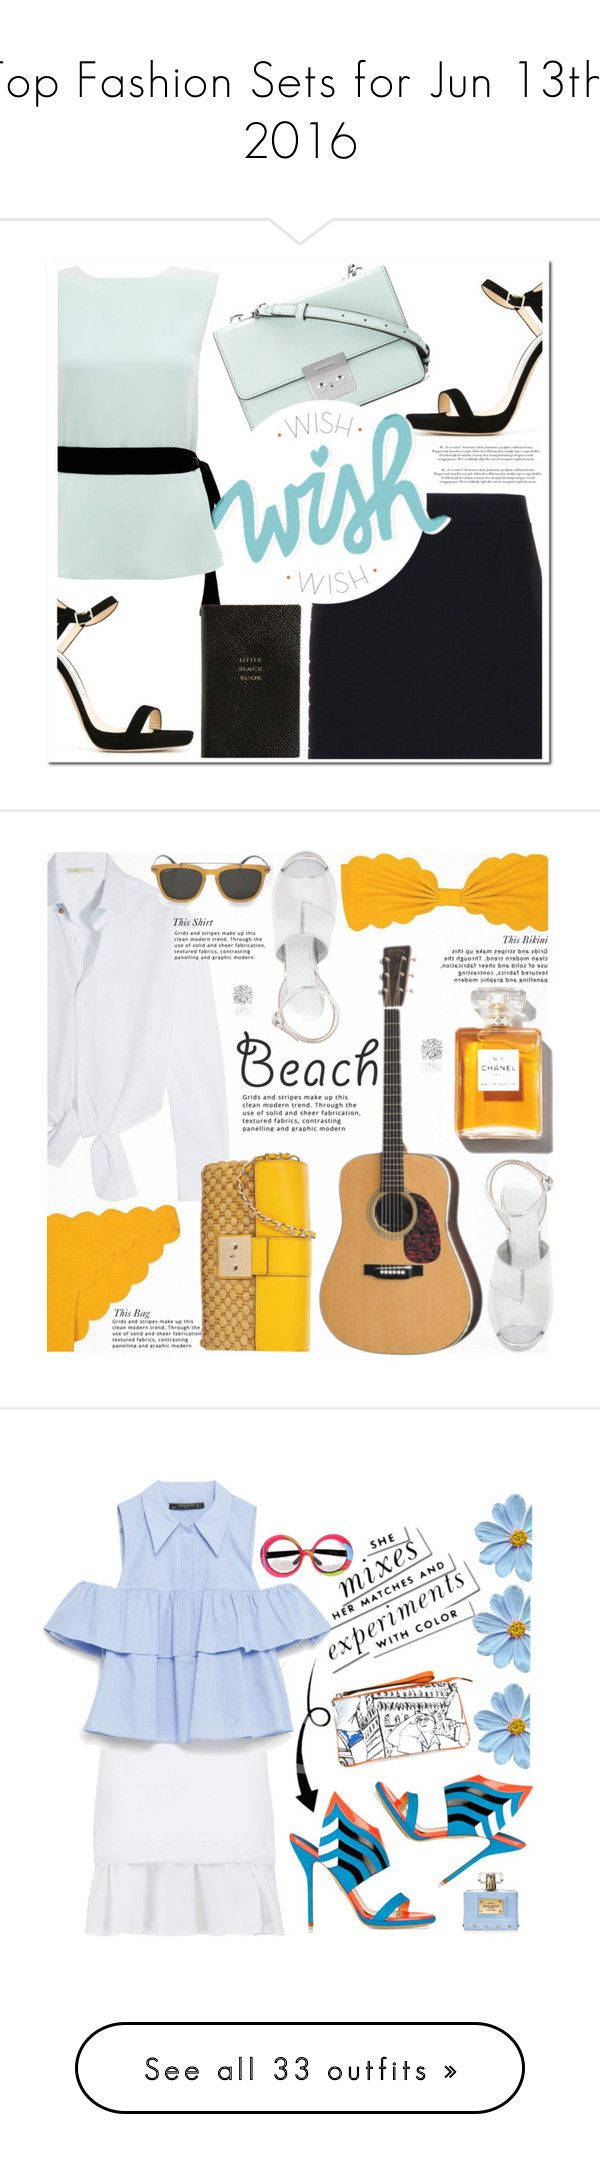 Top Fashion Sets for Jun 13th, 2016 by polyvore on Polyvore featuring polyvore fashion style Raoul Balenciaga Jimmy Choo MICHAEL Michael Kors Smythson clothing Maje Marysia Swim Maison Margiela Chanel Lipsy Michael Kors Salvatore Ferragamo Amanda Rose Collection Summer beach strawbags summerdate See by Chloé Zara Paul Andrew Emilio Pucci Versace Kate Spade emiliopucci zara chloe whiteskirt paleblue Current/Elliott Steve J & Yoni P Straw Studios Christian Dior Ancient Greek Sandals…